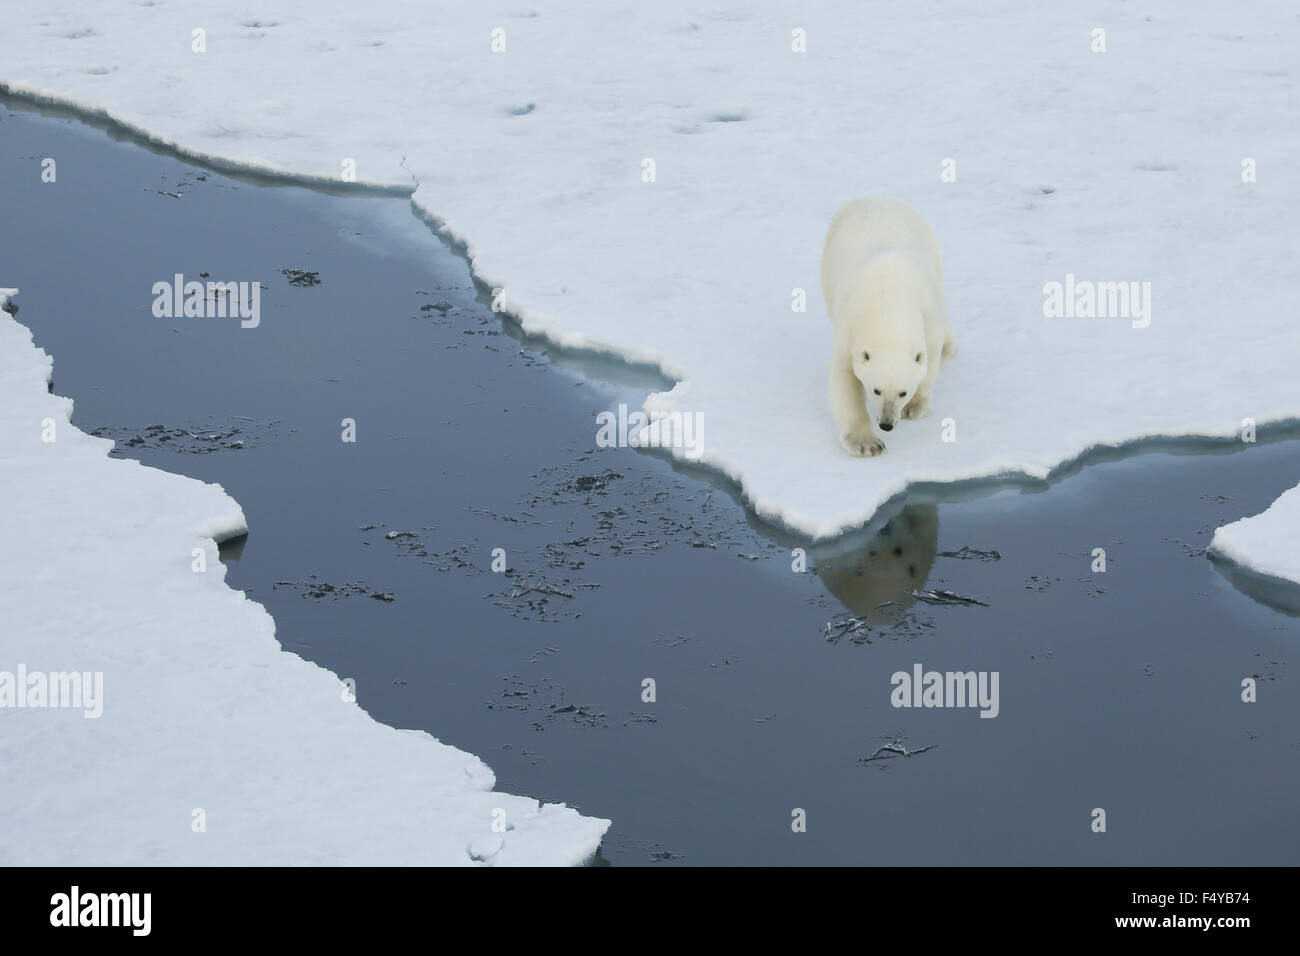 Greenland, Scoresby Sound, polar bear walks to edge of sea ice, reflection of bear in water. - Stock Image